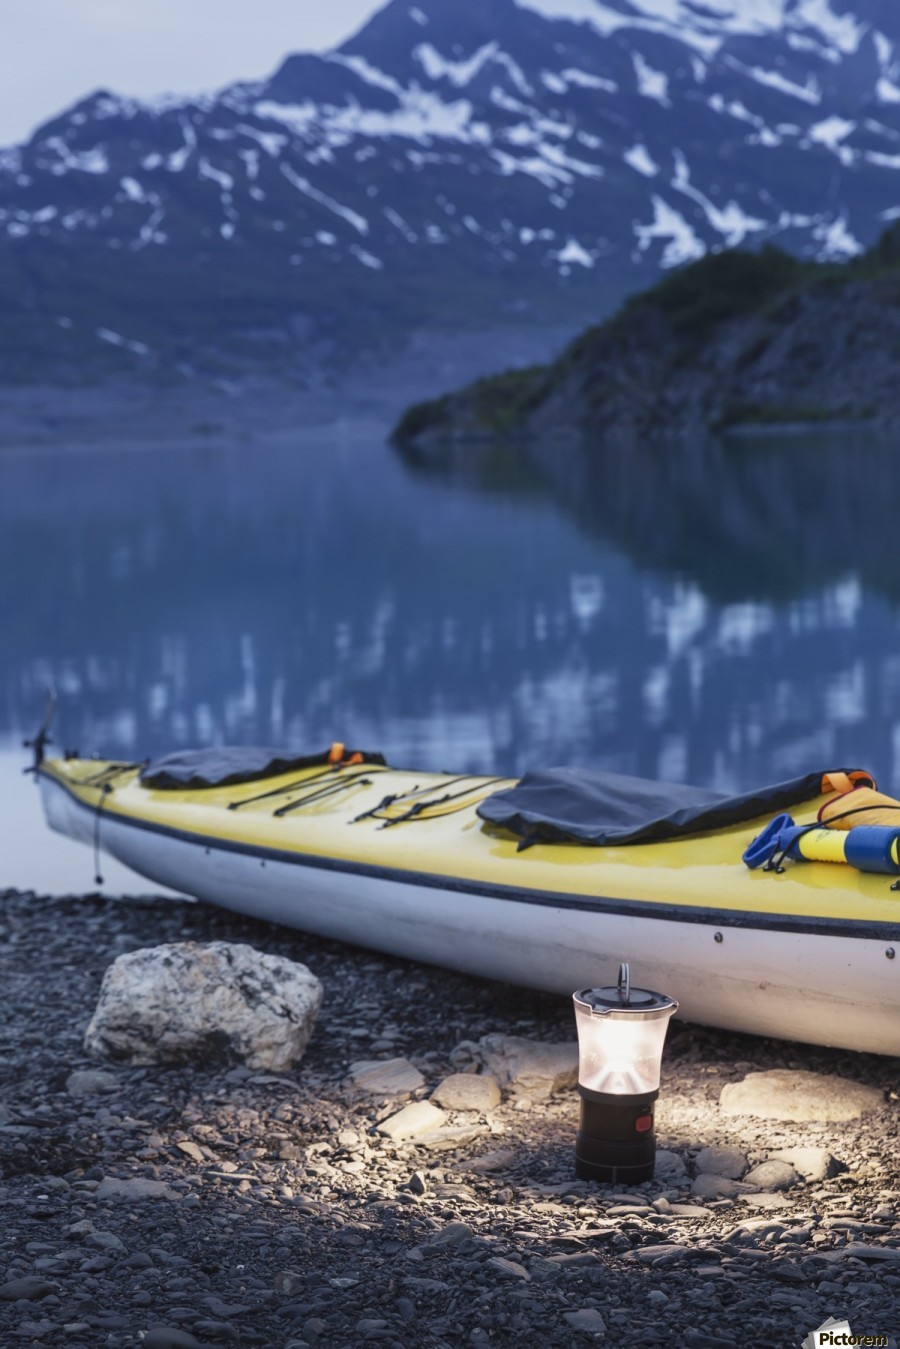 Kayak and lantern on the beach with mountains in the back ground at dusk, Shoup Bay State Marine Park, Prince William Sound, Valdez, Southcentral Alaska  Print